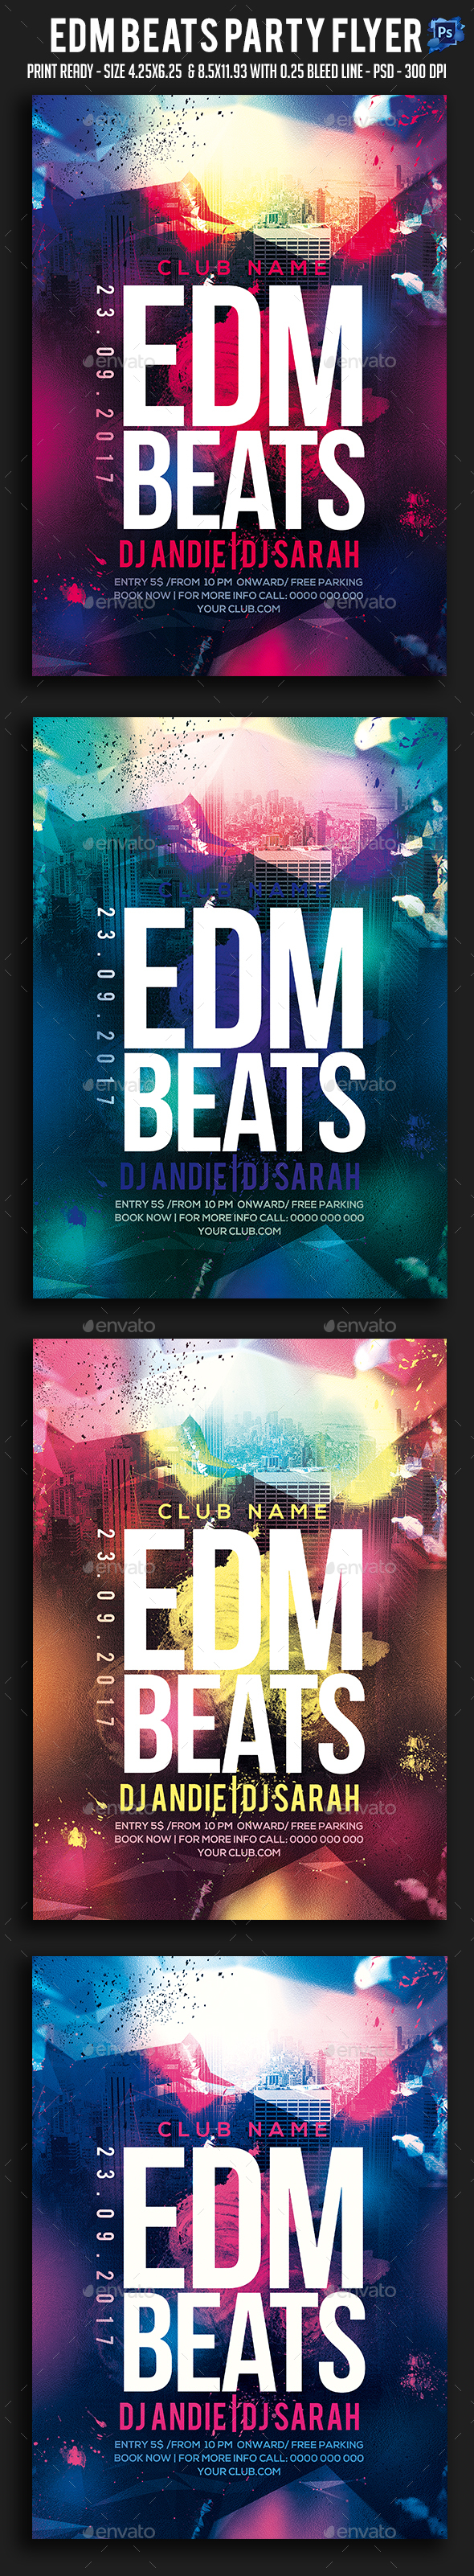 Edm Beats Party Flyer - Clubs & Parties Events